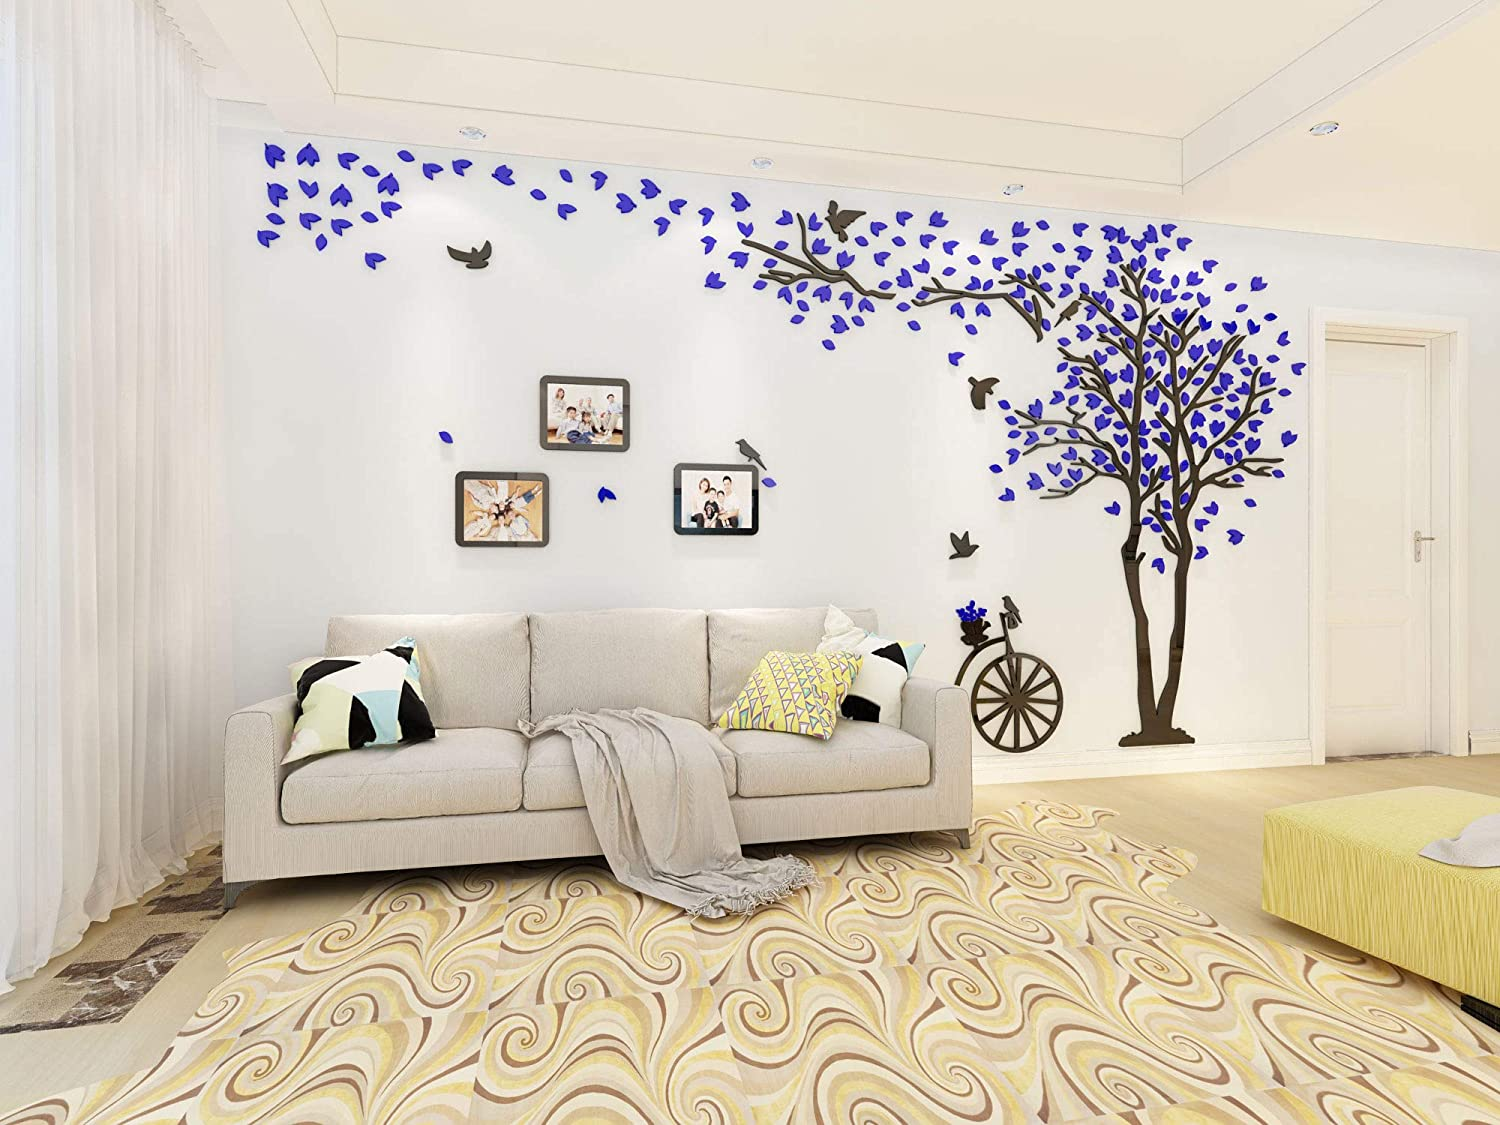 KINBEDY 3D Acrylic Black Tree Wall Stickers Photo Frames Family Tree Wall Decal Easy to Install &Apply DIY Photo Gallery Frame Decor Sticker Home Art Decor Blue-Right, Large.